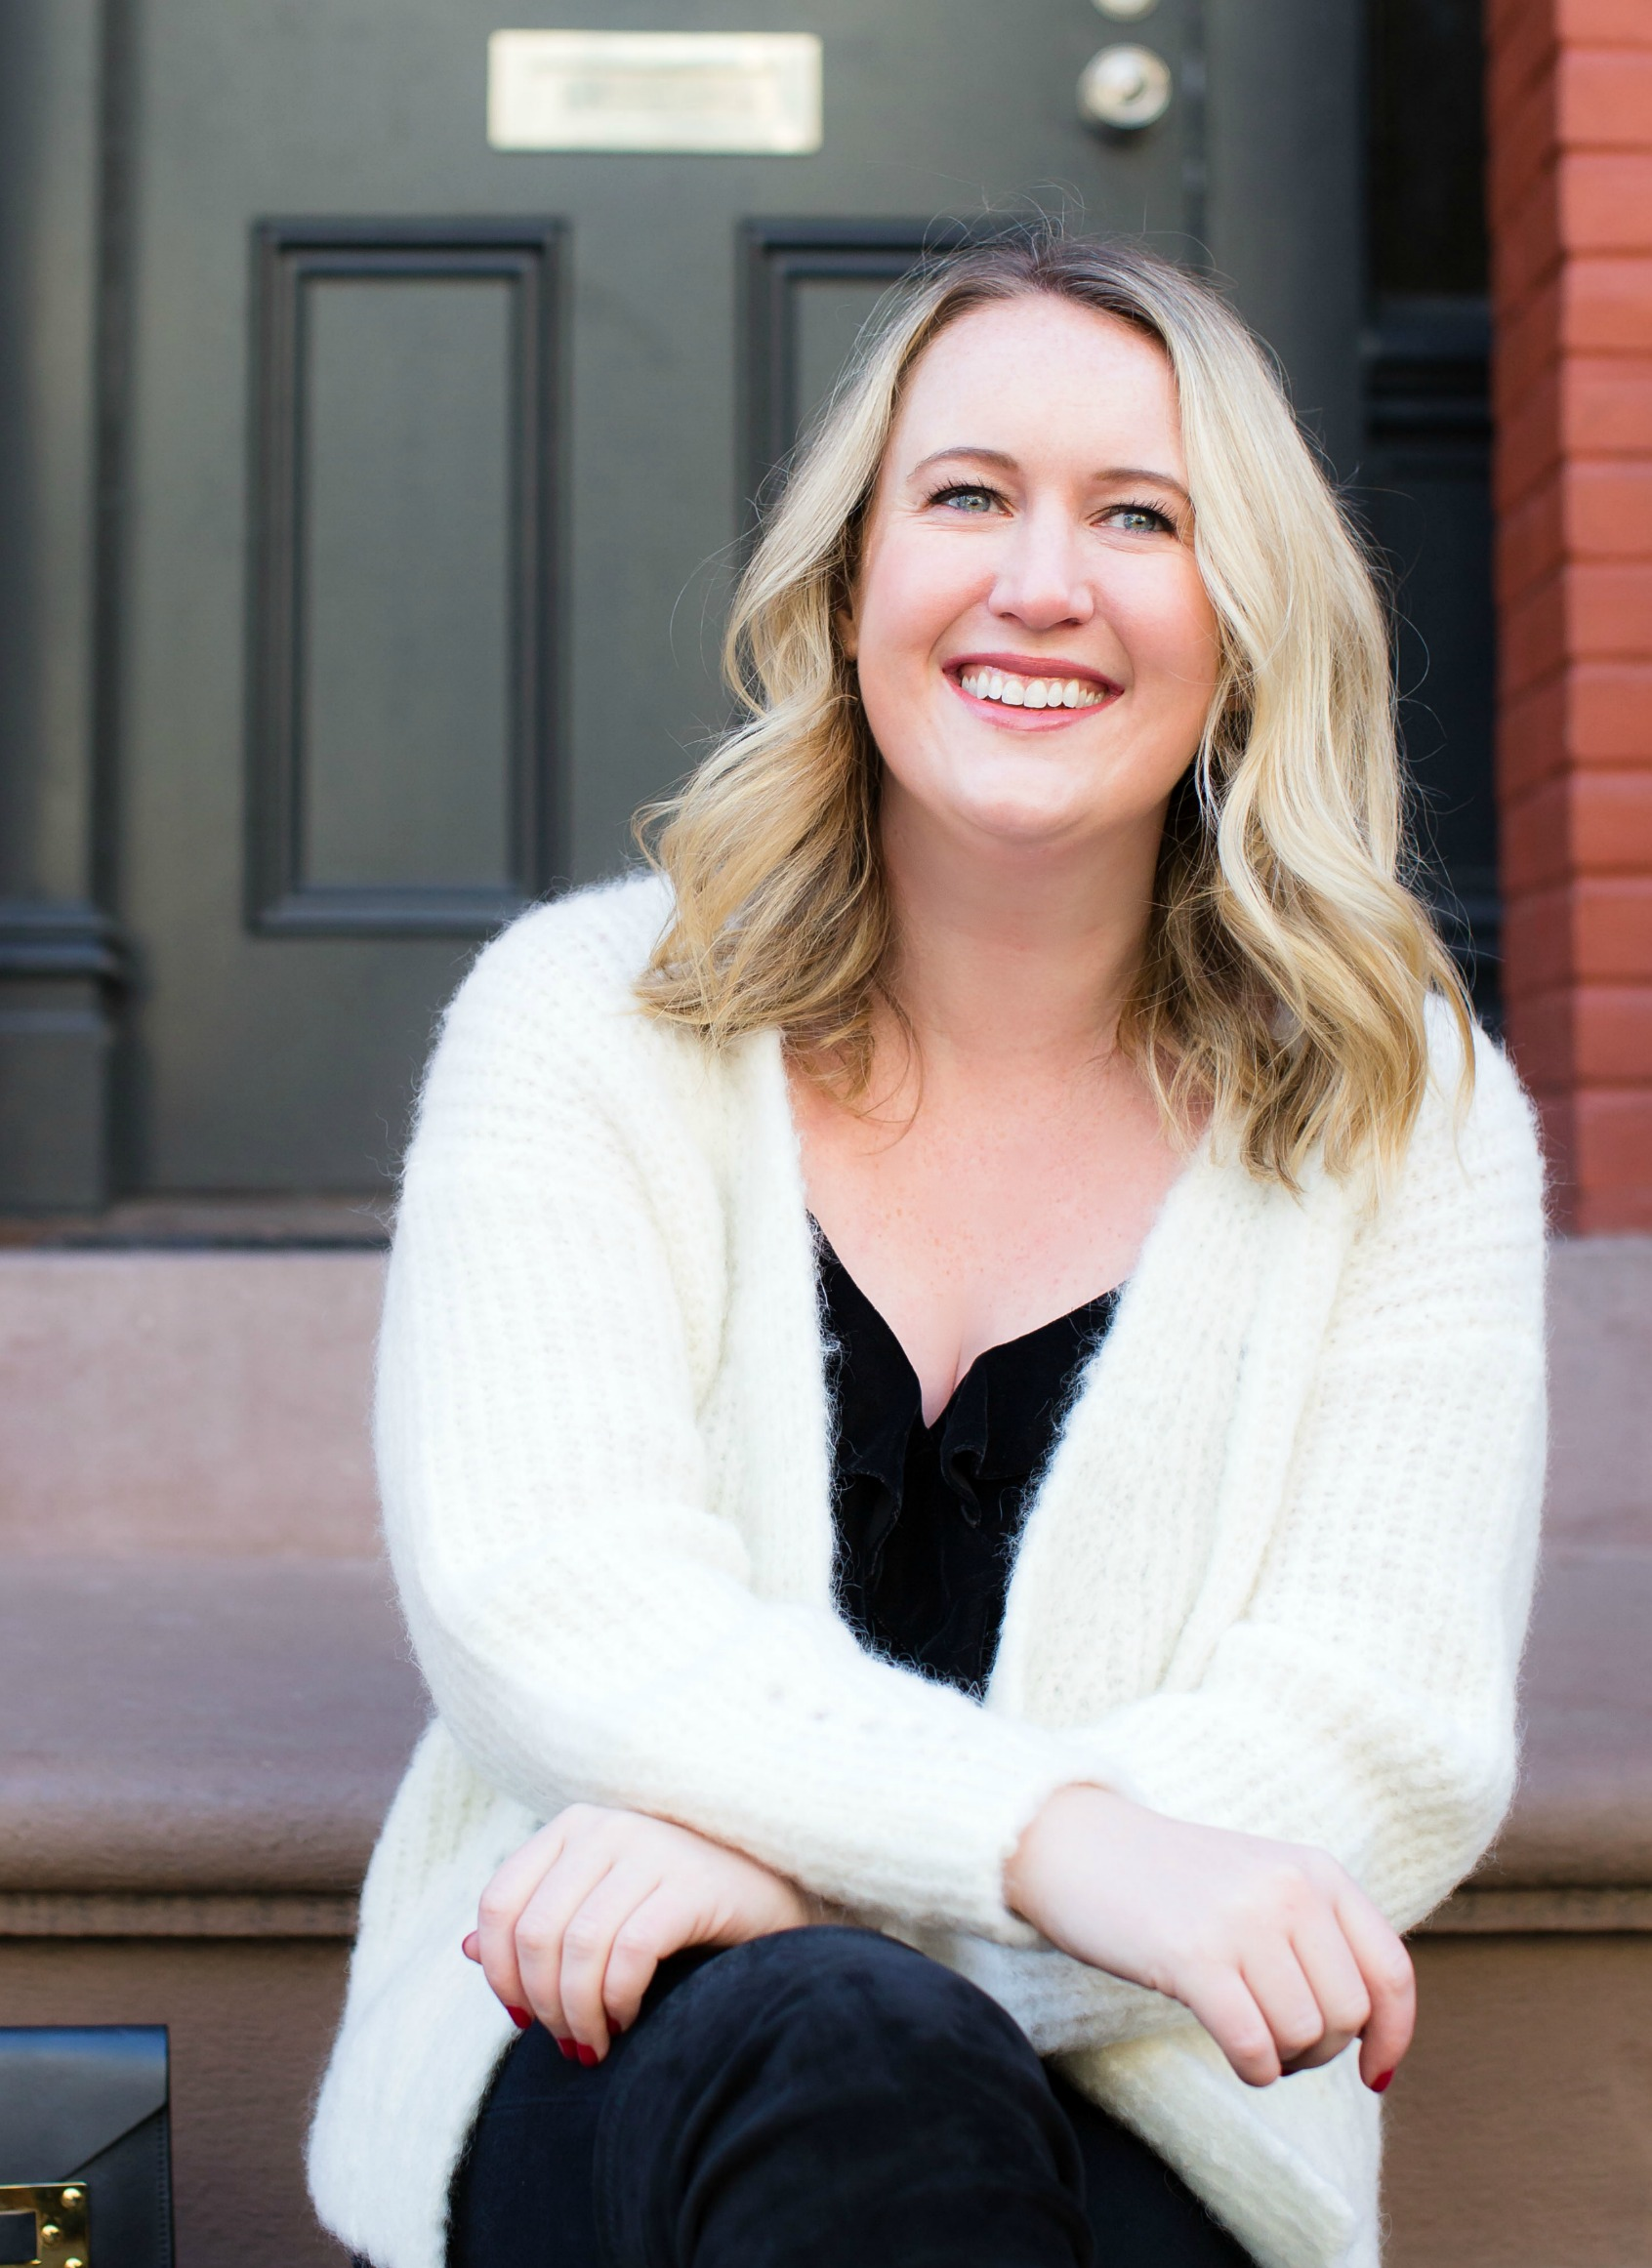 Meghan Donovan of wit & whimsy Reveals her Olay 28 Day Challenge Results